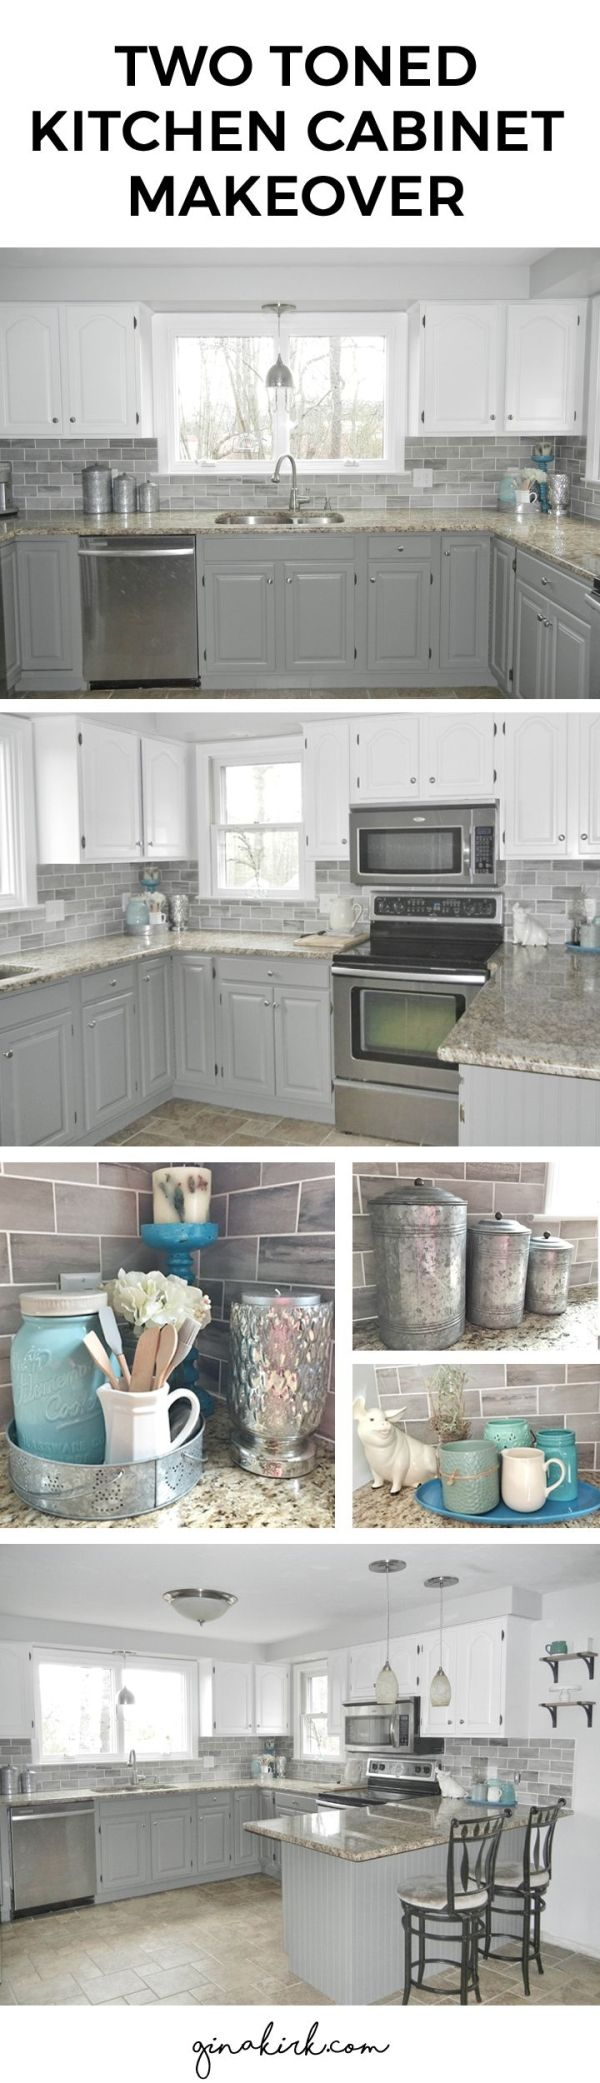 Kitchen cabinet makeover oak cabinets to two toned gray and white